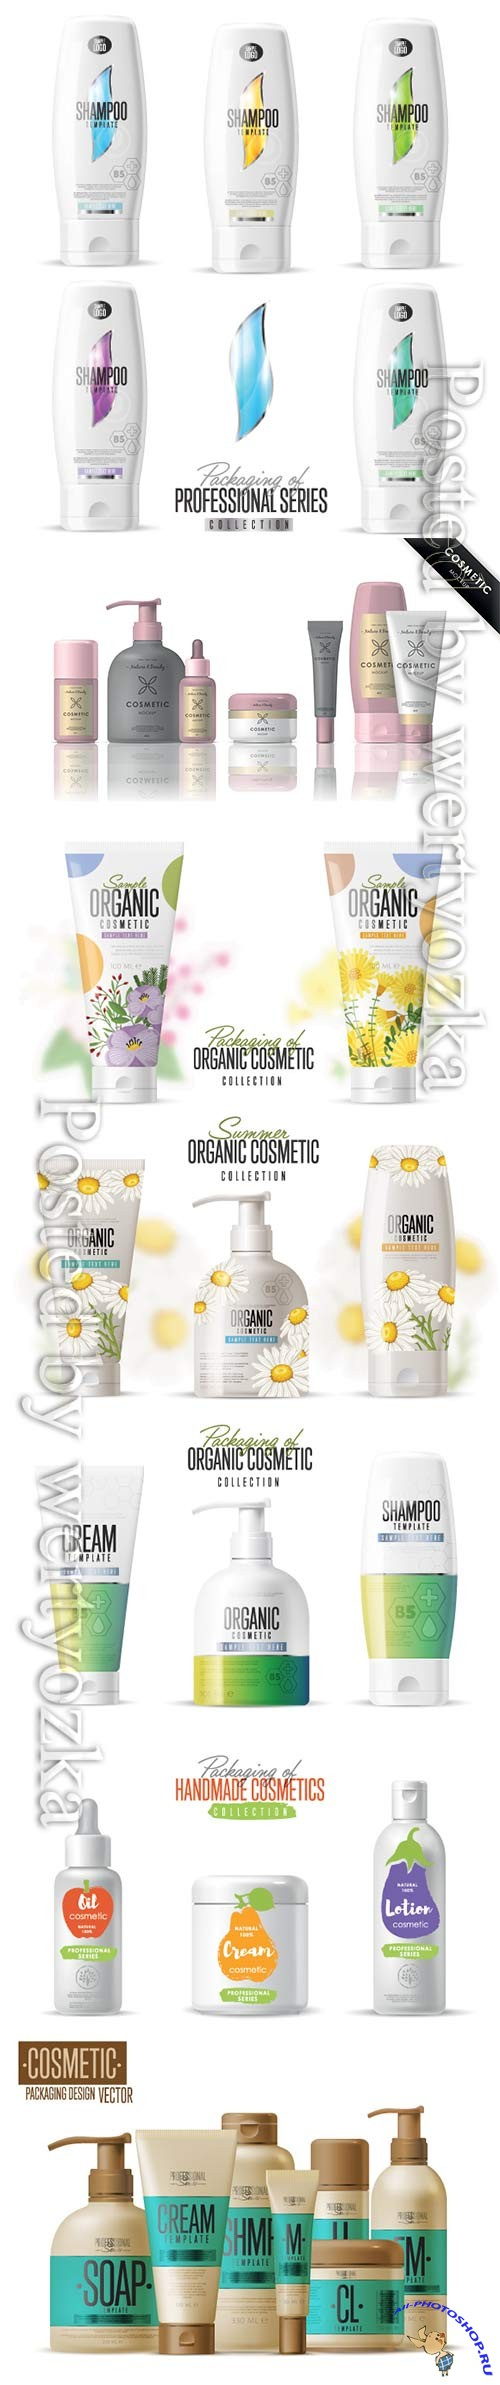 Cosmetic brand template, vector packaging, body care product